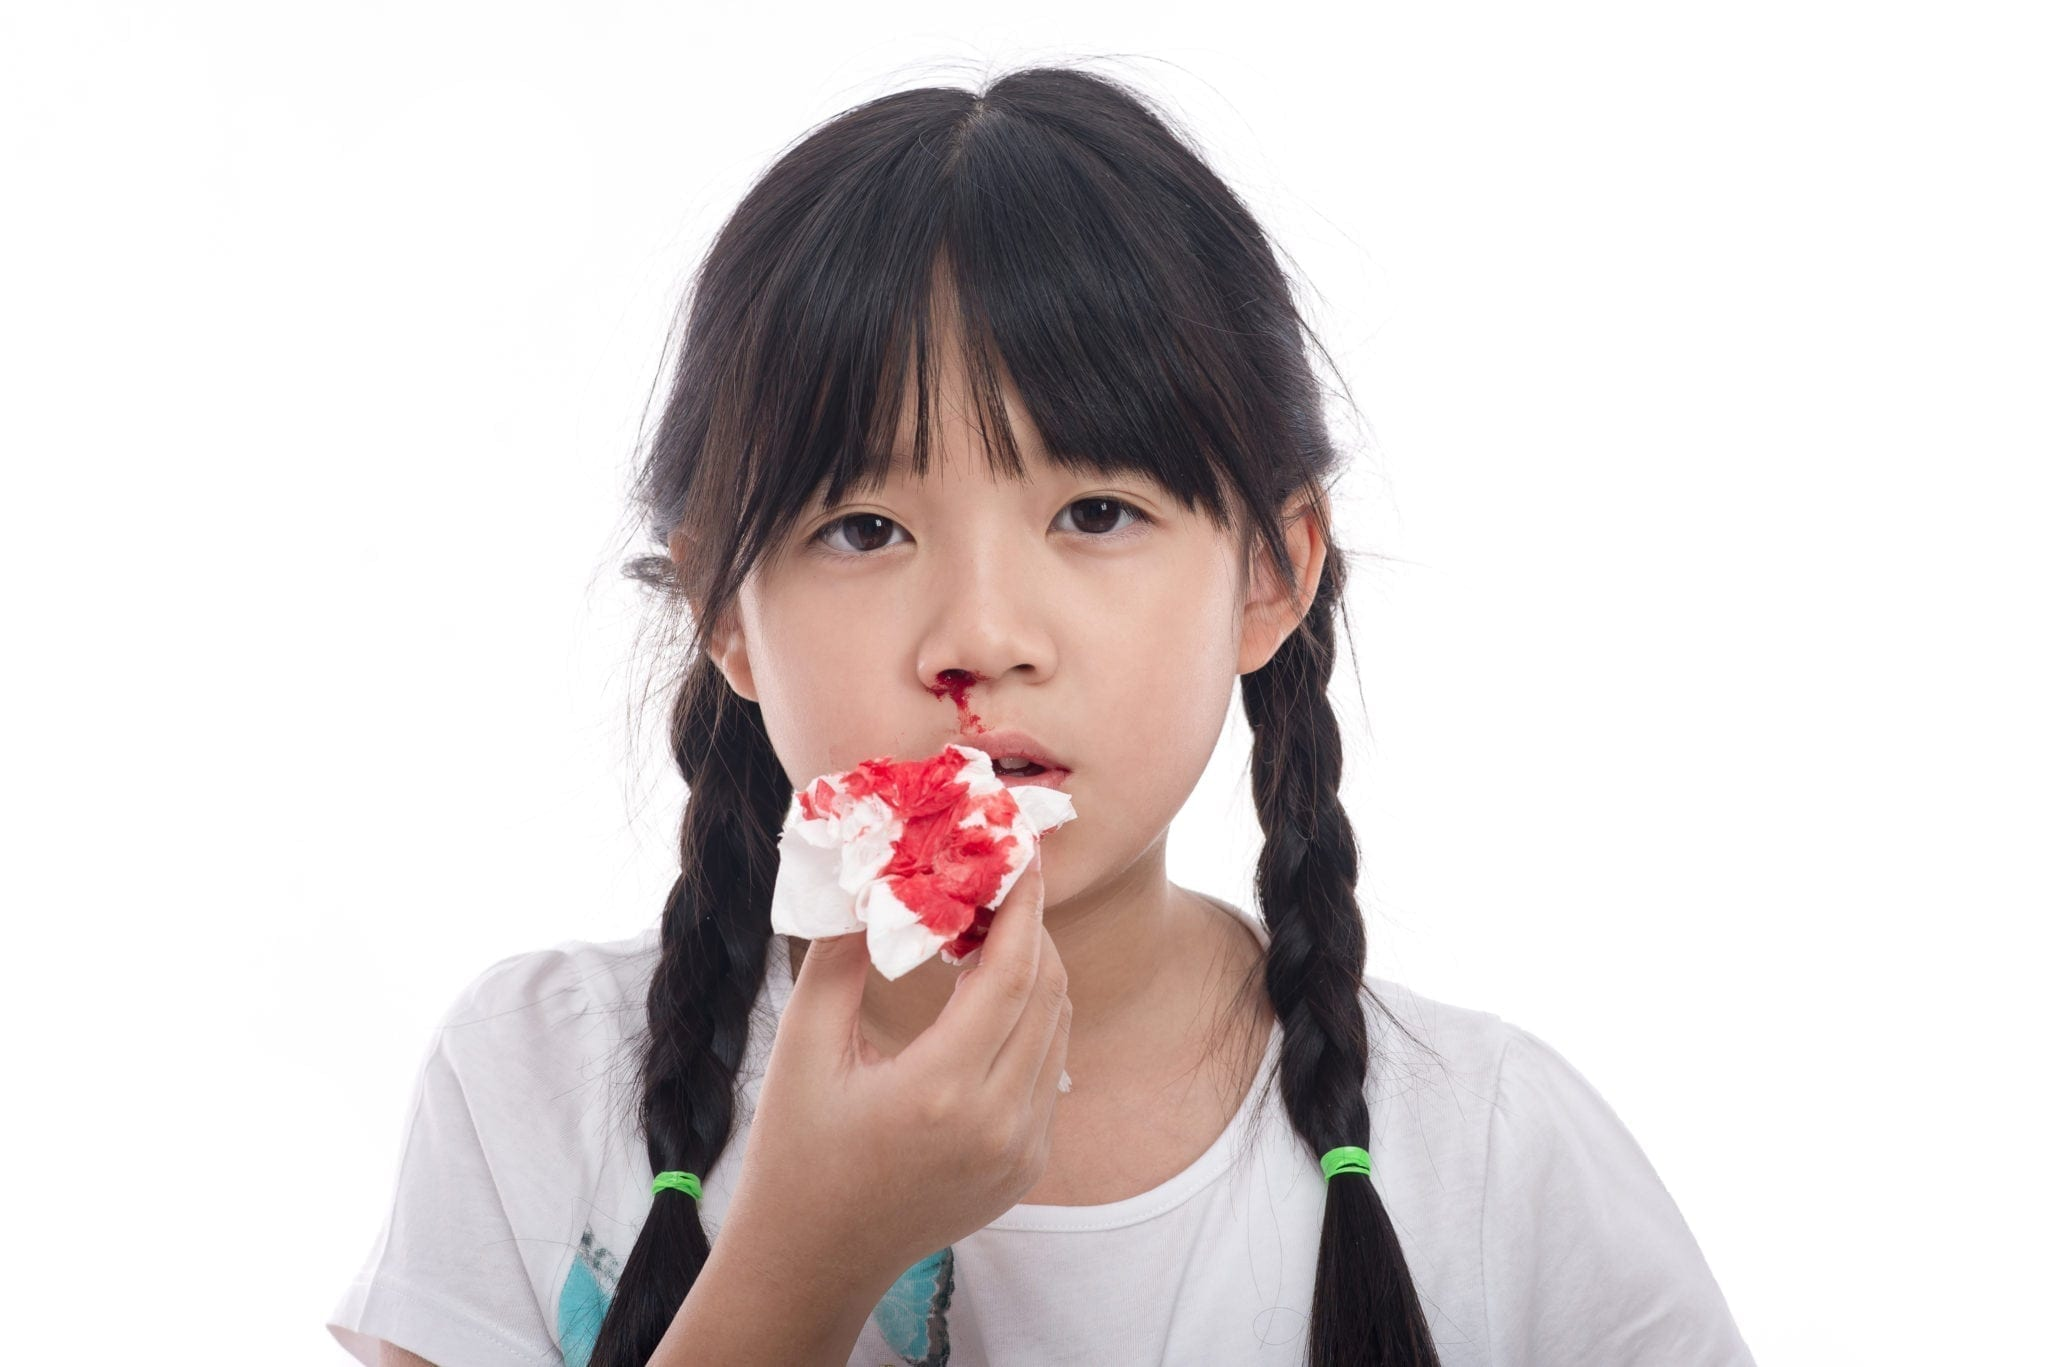 Nosebleeds: Causes and Treatment - familydoctor org